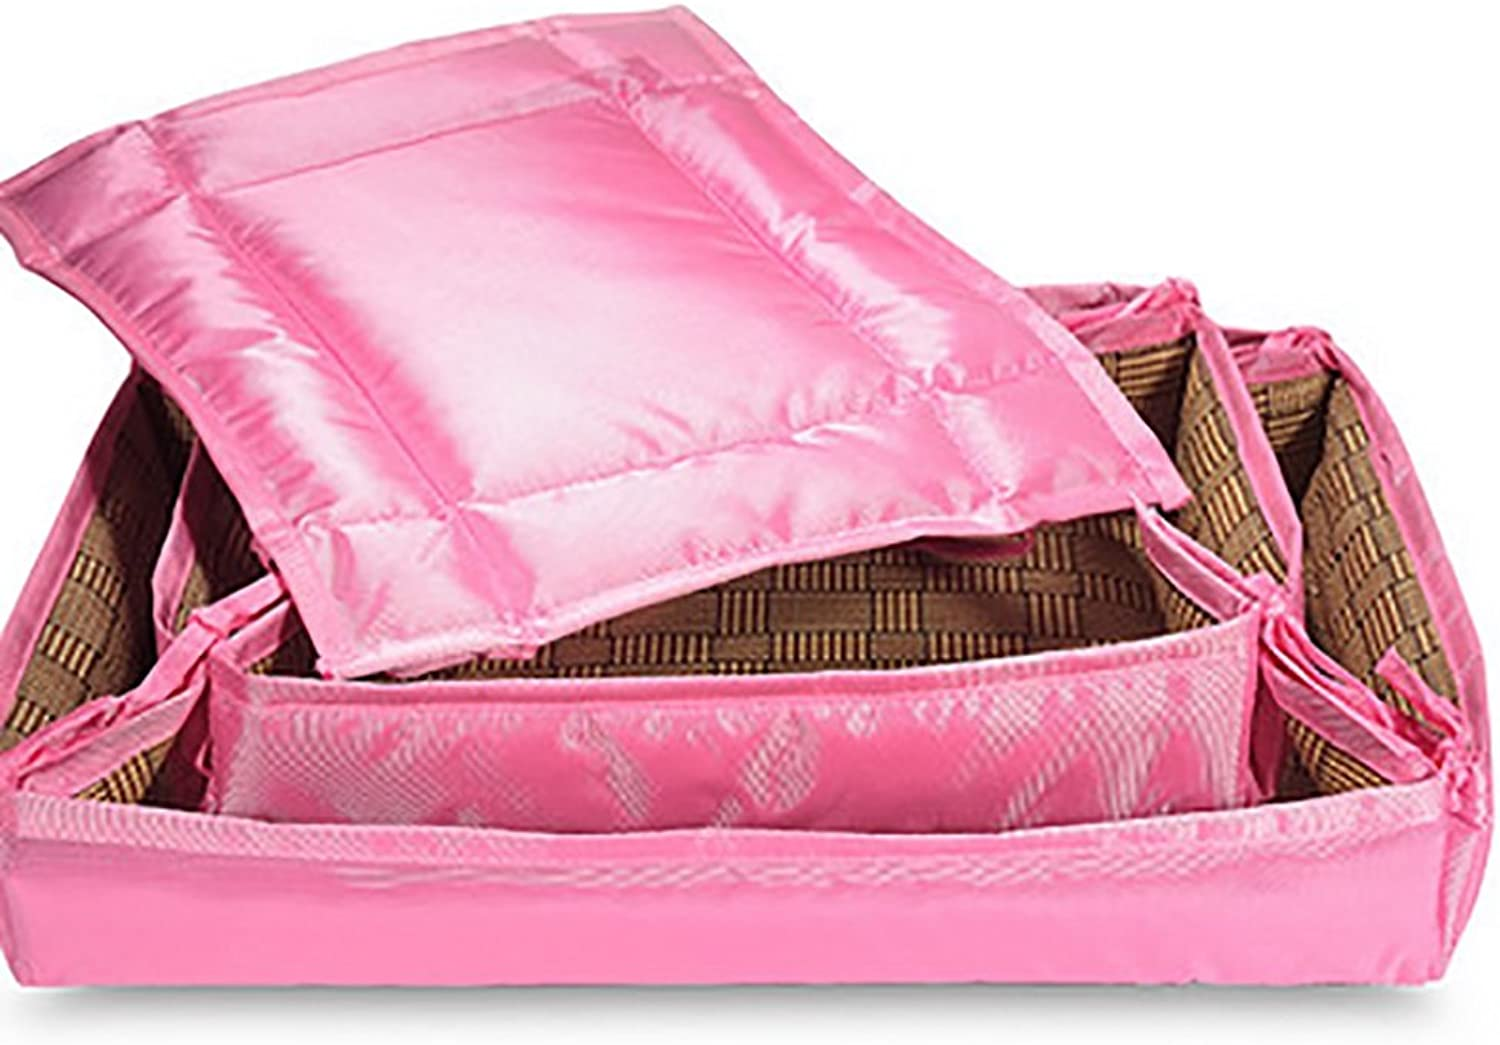 FXNN Pet Bed  Removable and Washable Soft and Comfortable Four Seasons pet Supplies (color   Pink, Size   L)